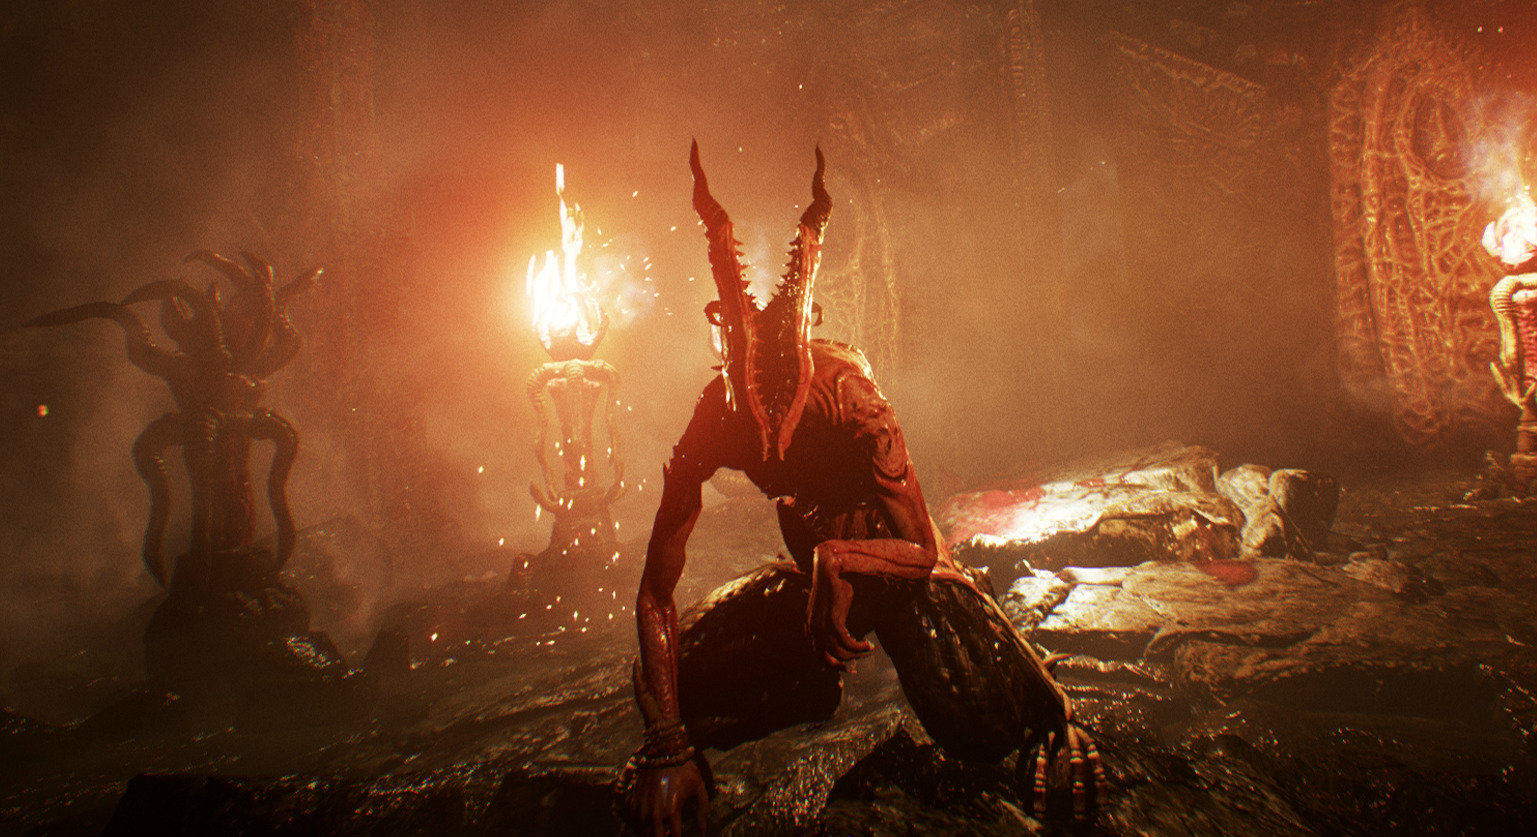 Agony to bring its hell-bound horror in 2017